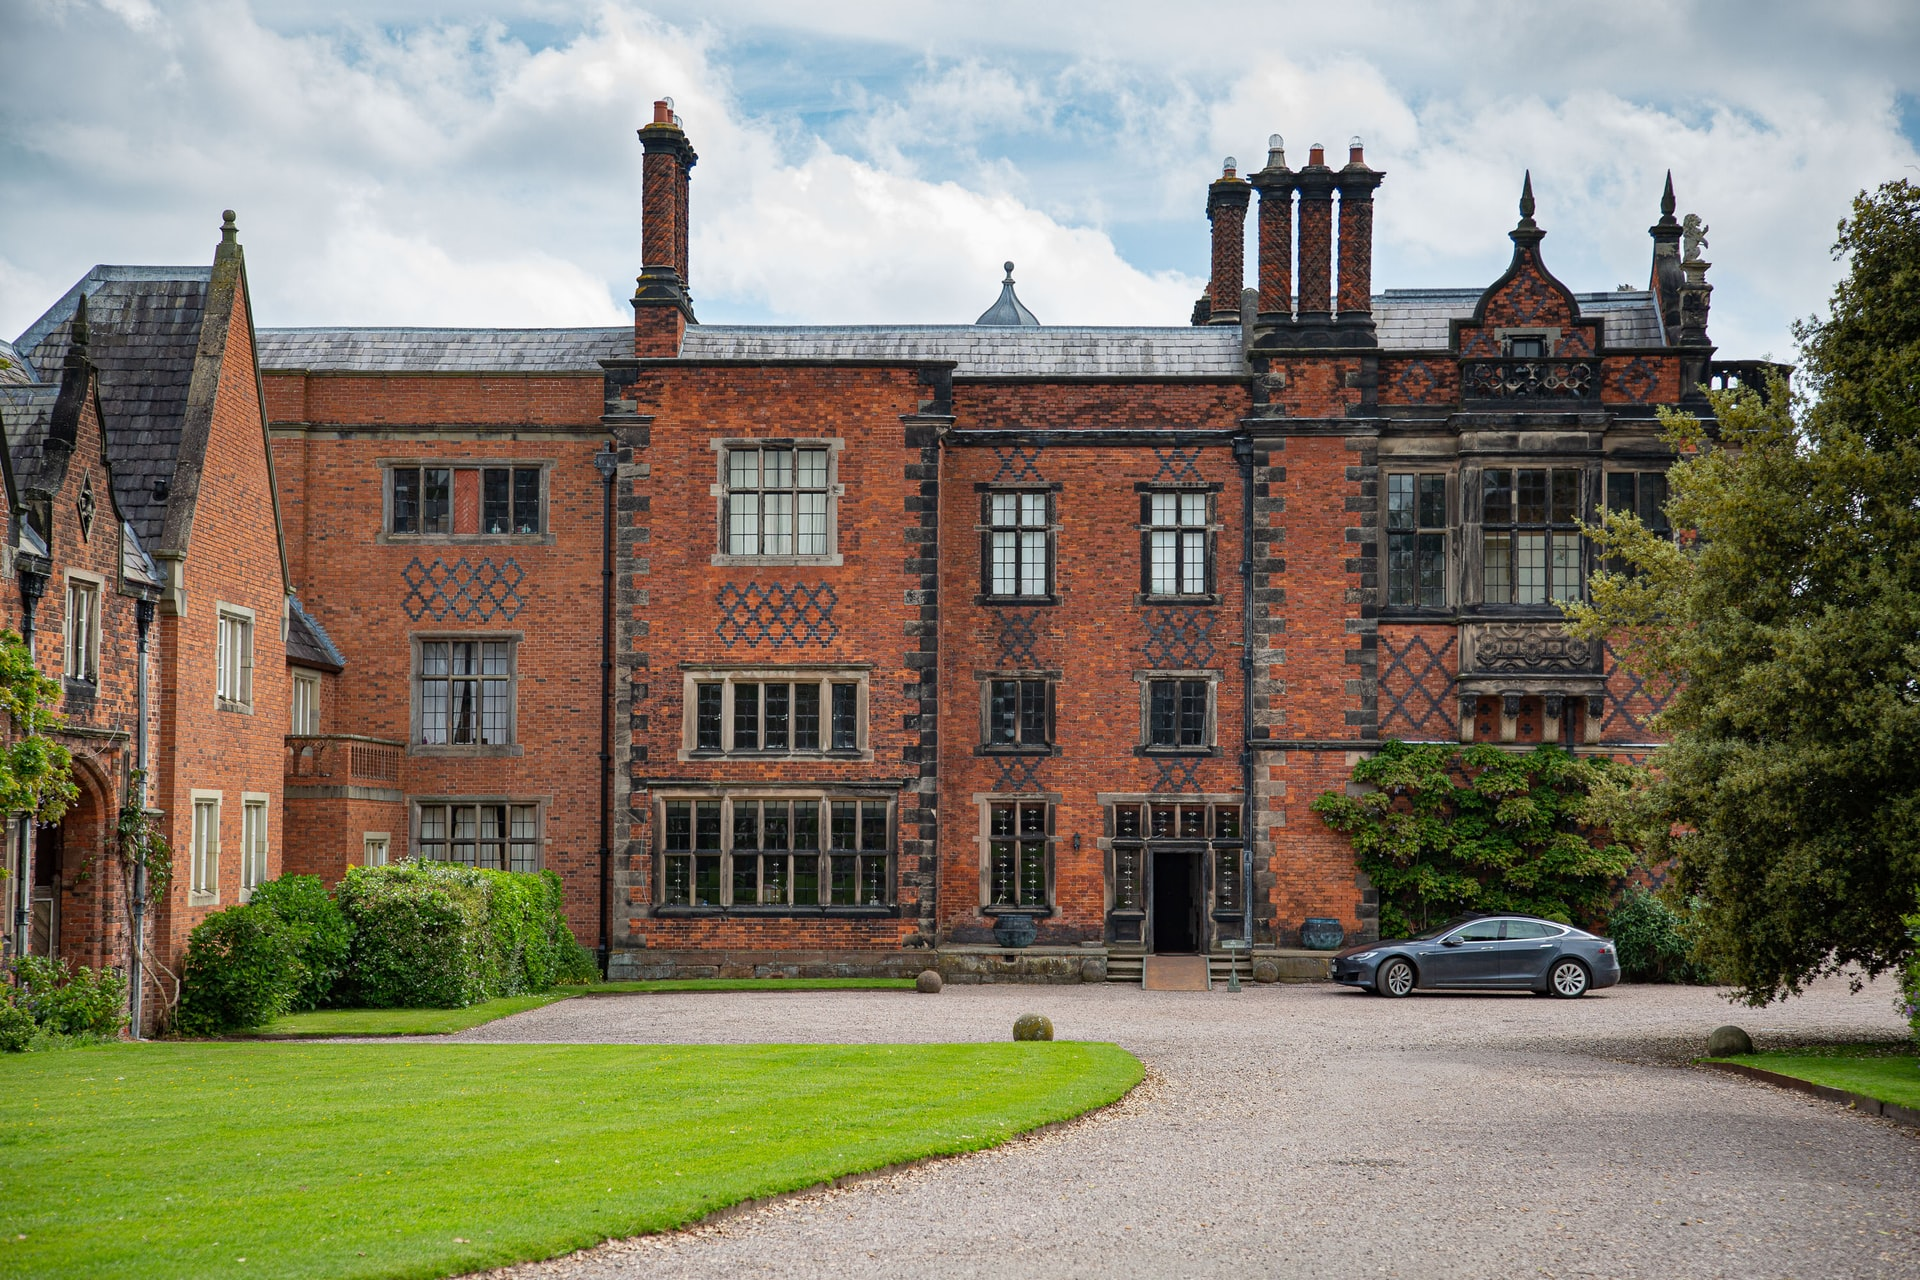 WHAT ARE THE CONSEQUENCES OF NOT APPLYING FOR LISTED BUILDING CONSENT